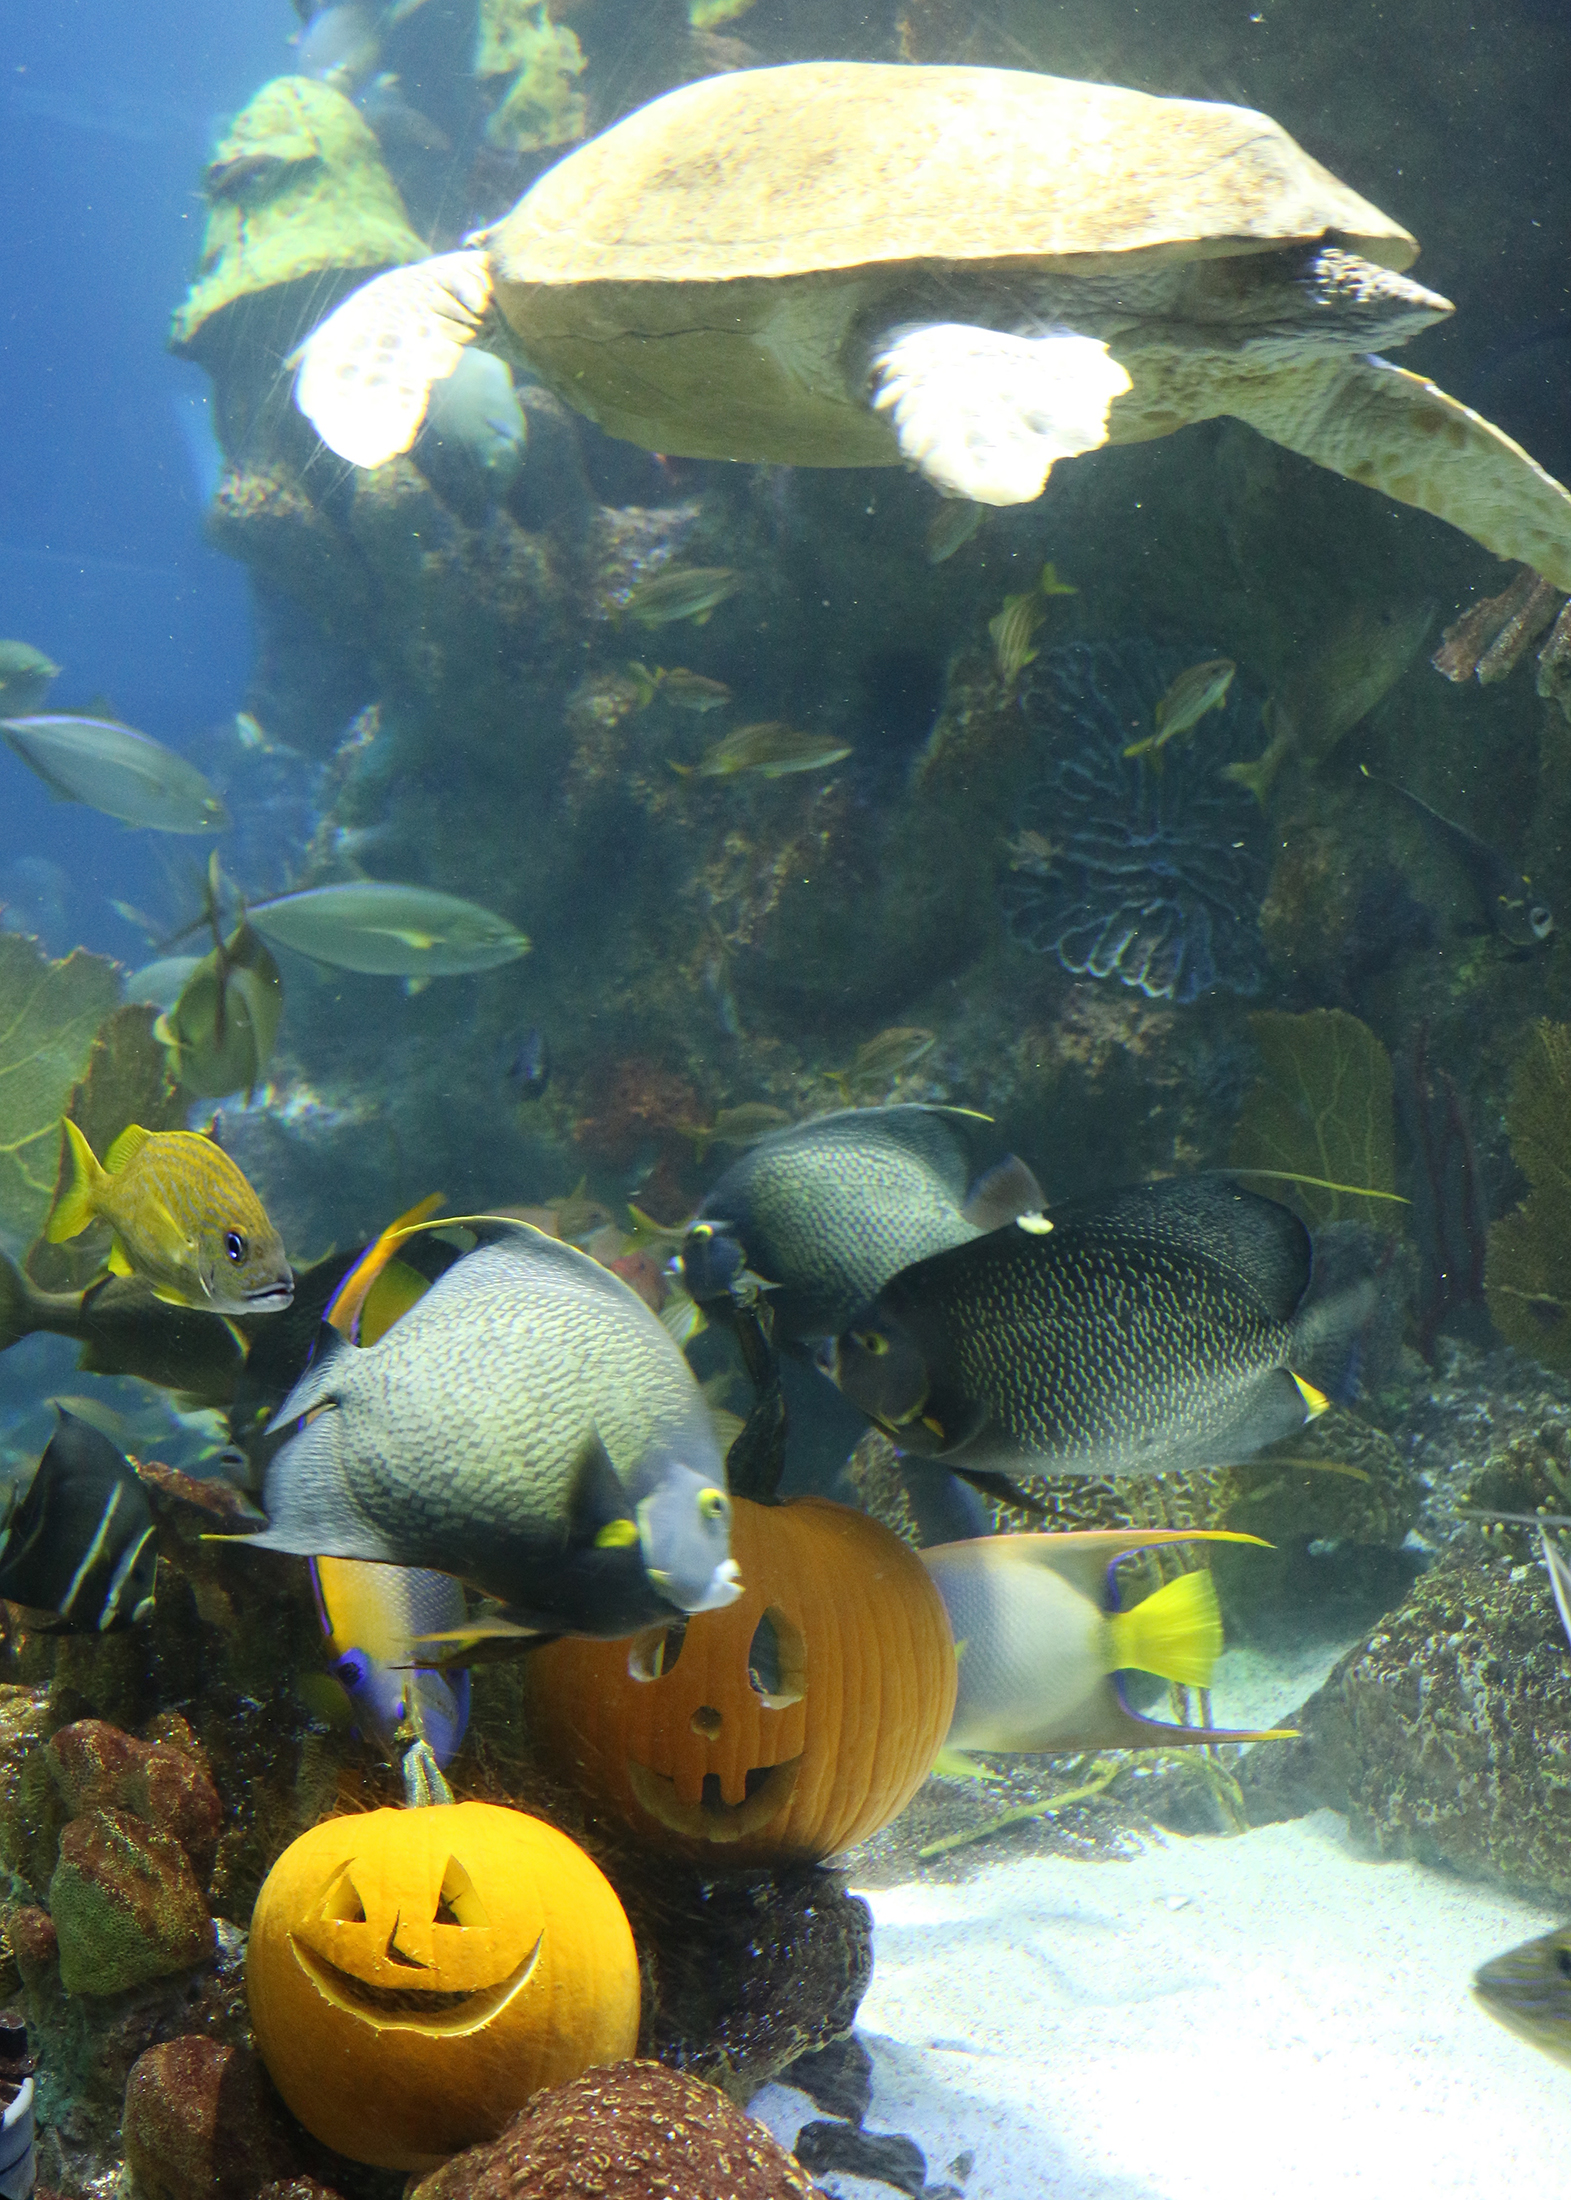 Fish in new aquarium - Neaq_halloween_gotpumpkin5